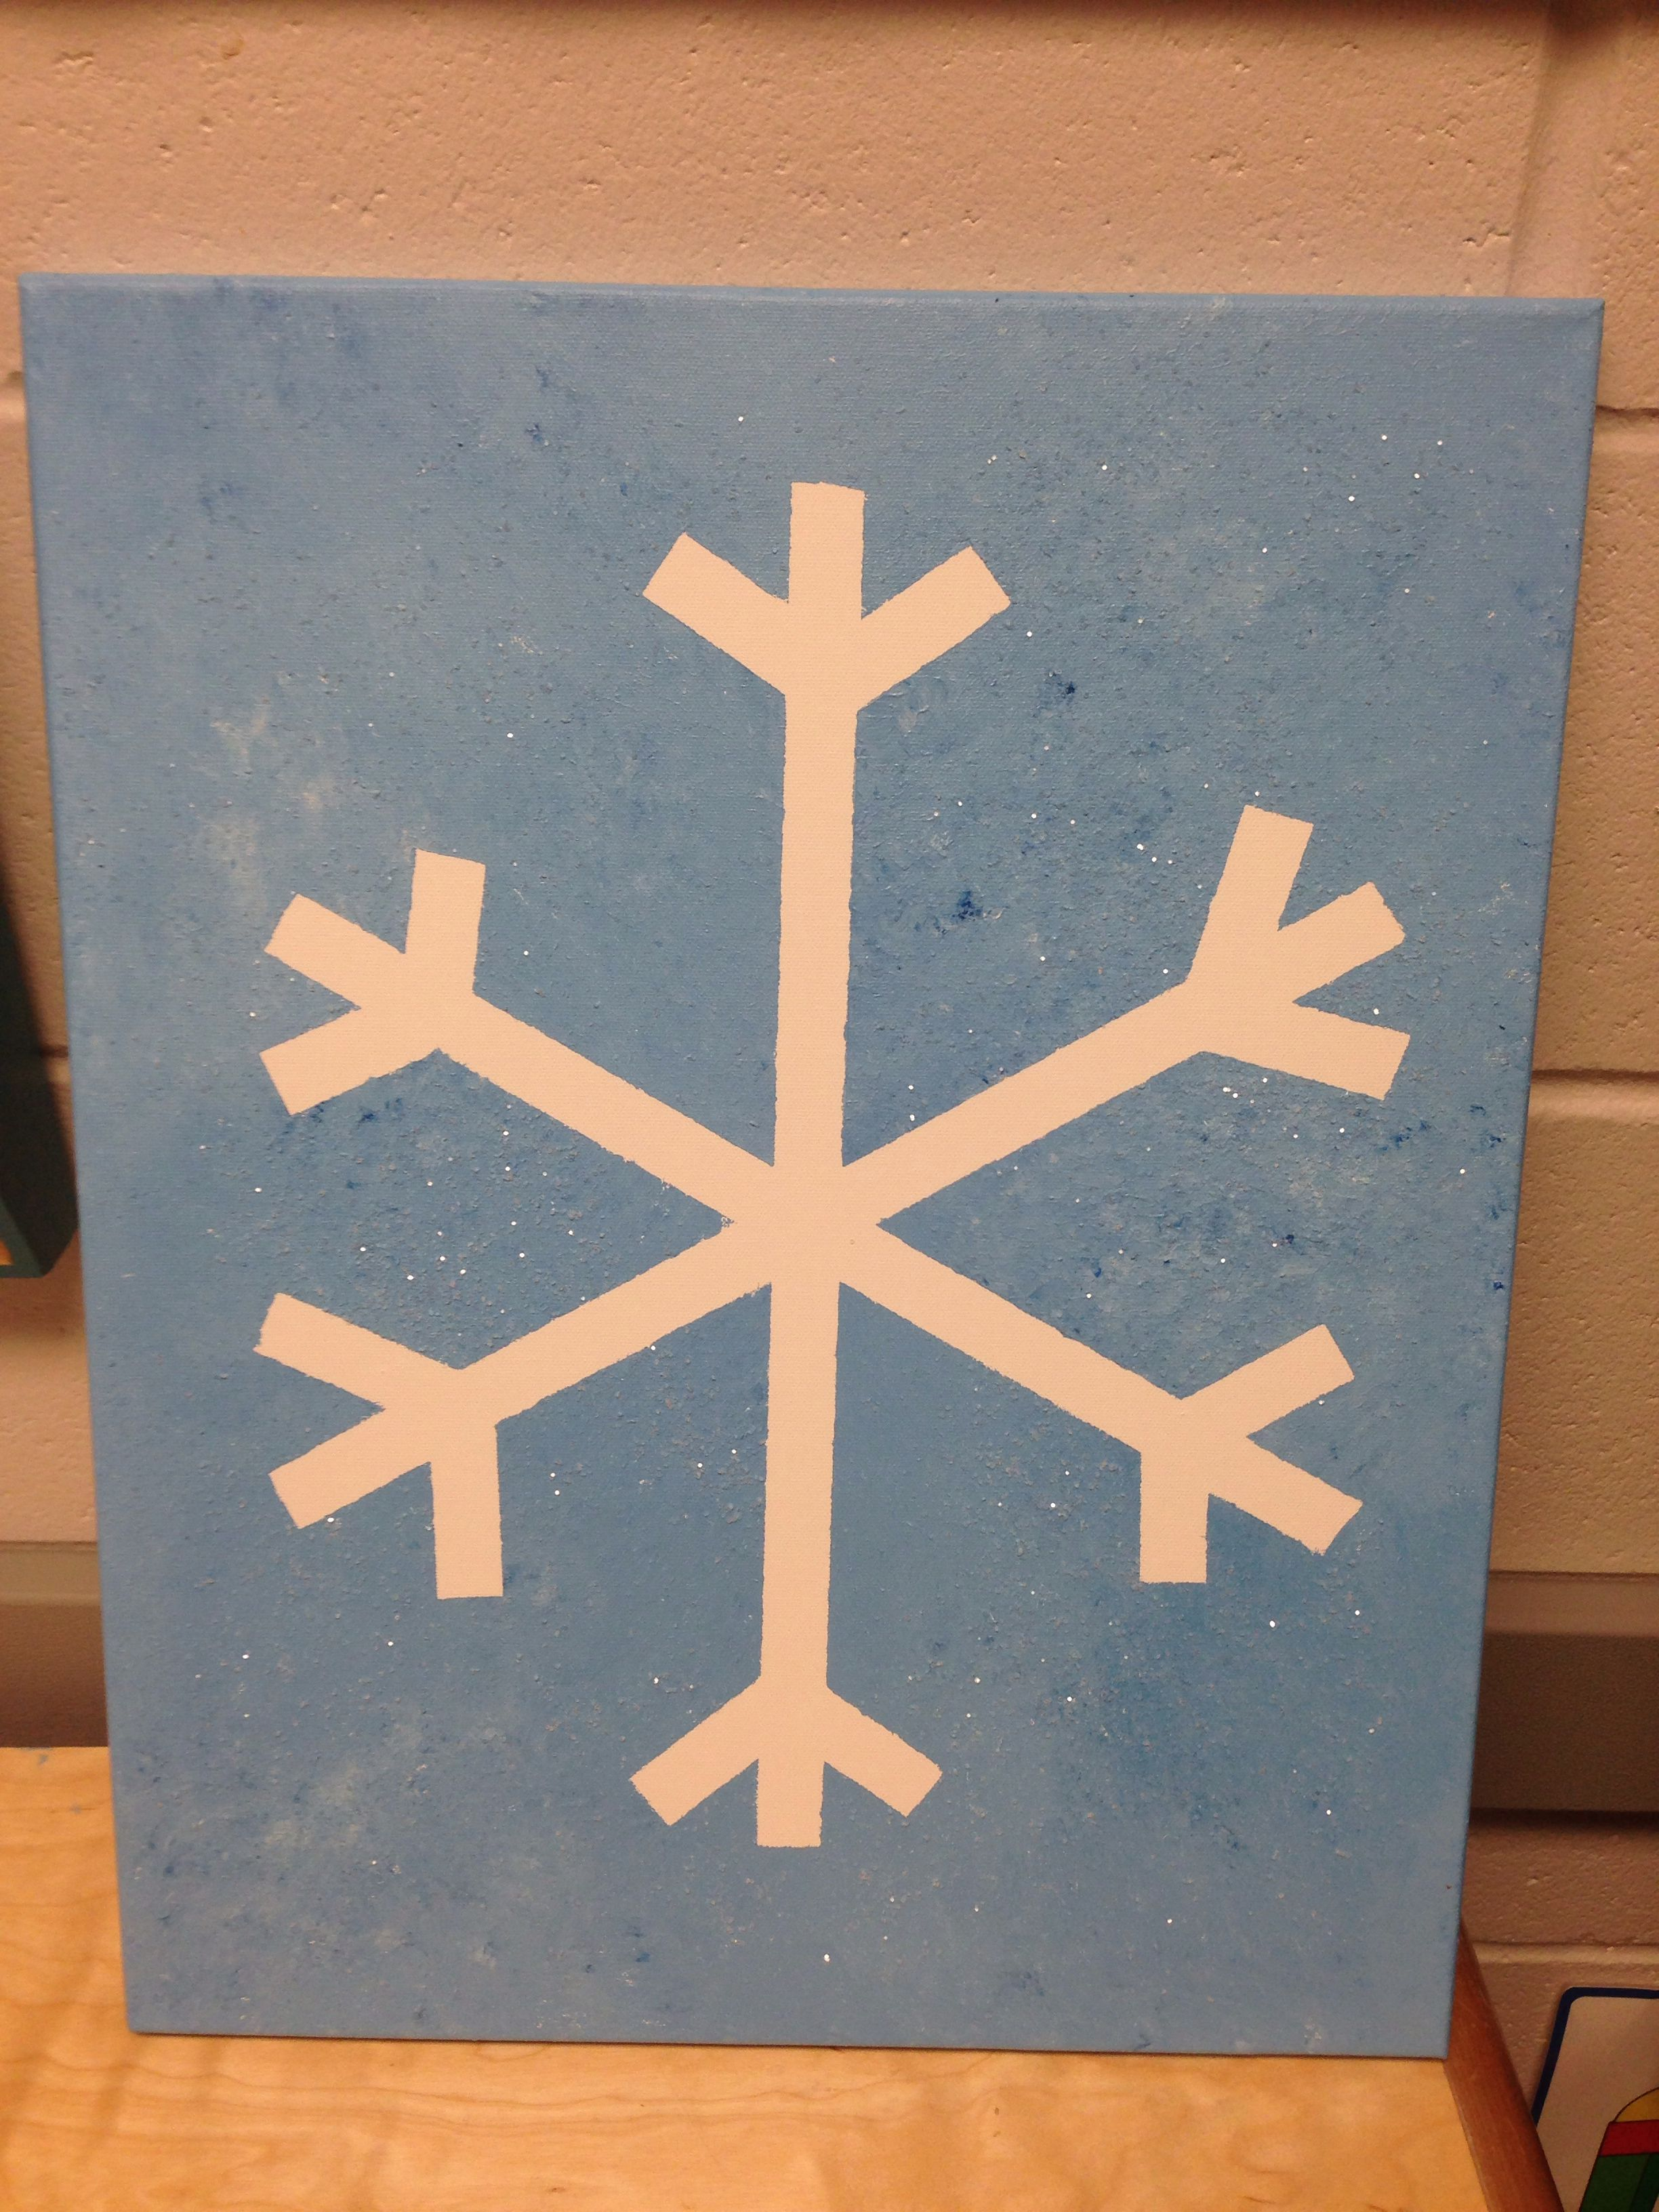 Use Masking Tape To Make A Snowflake Mix White And Blue Acrylic Paint Sponge Onto The Canvas W Christmas Party Crafts Christmas Card Crafts Cute Kids Crafts